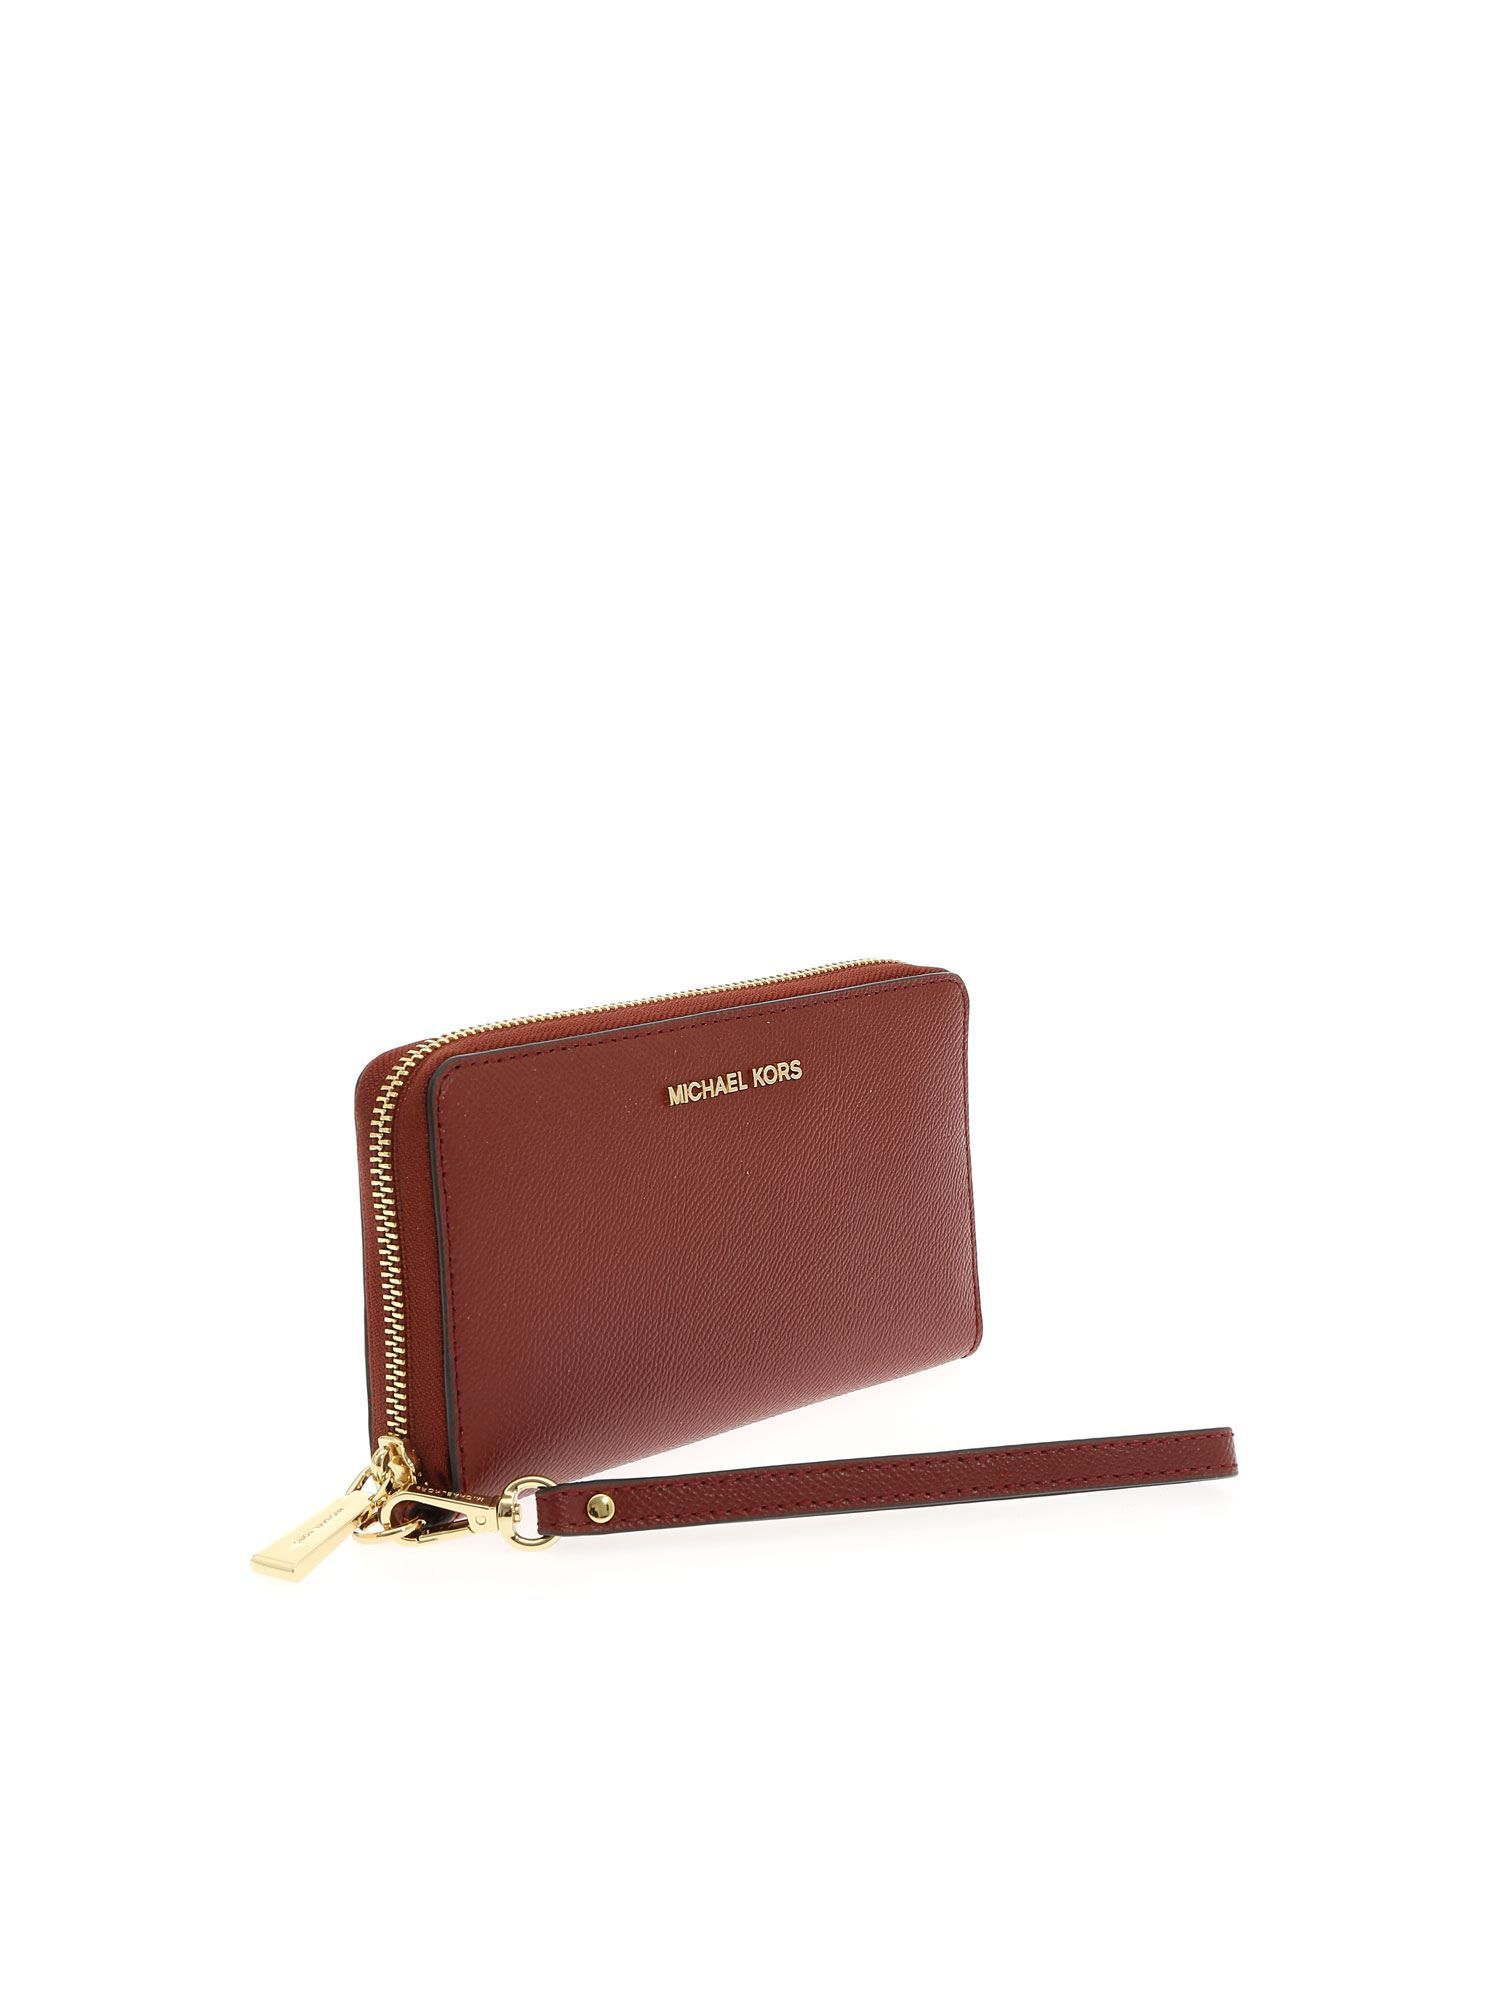 MICHAEL KORS WOMEN'S 34F9GTVE9L626 BURGUNDY LEATHER WALLET